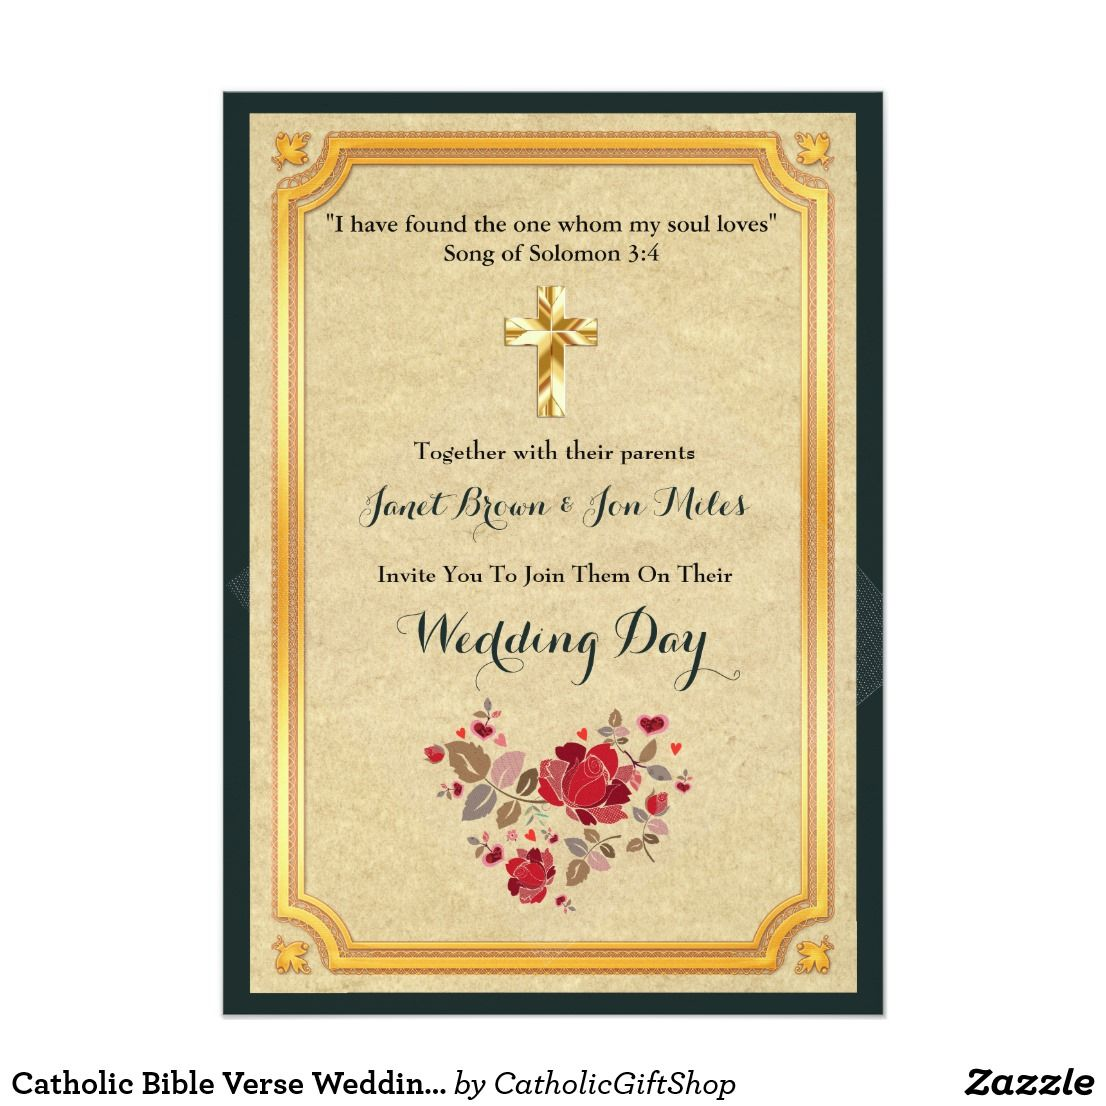 Catholic Bible Verse Wedding Invites Corinthians | Trending Wedding ...